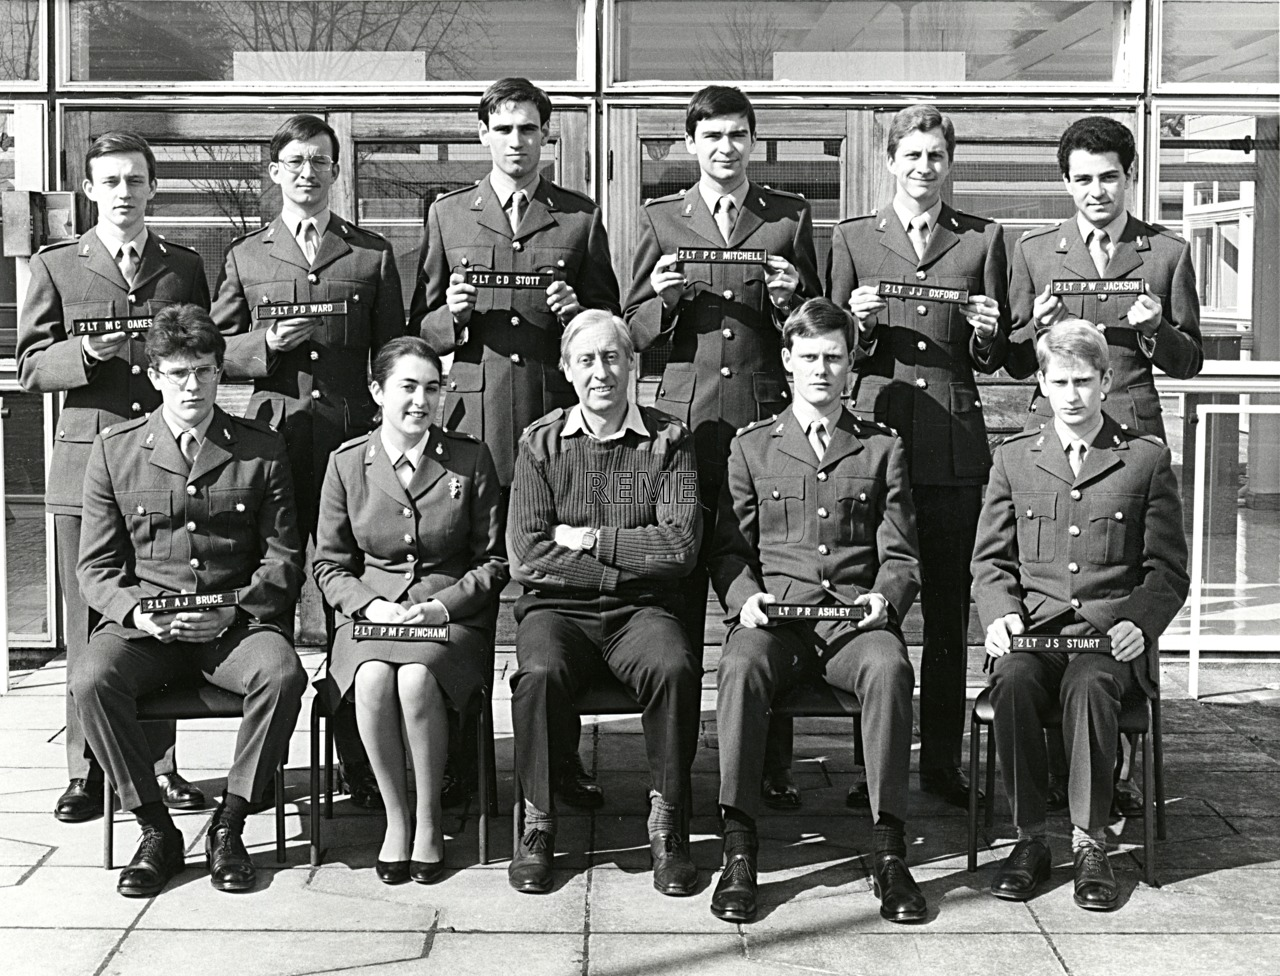 No 77 Regular Young Officers' Course, REME Officers' School, 1982.